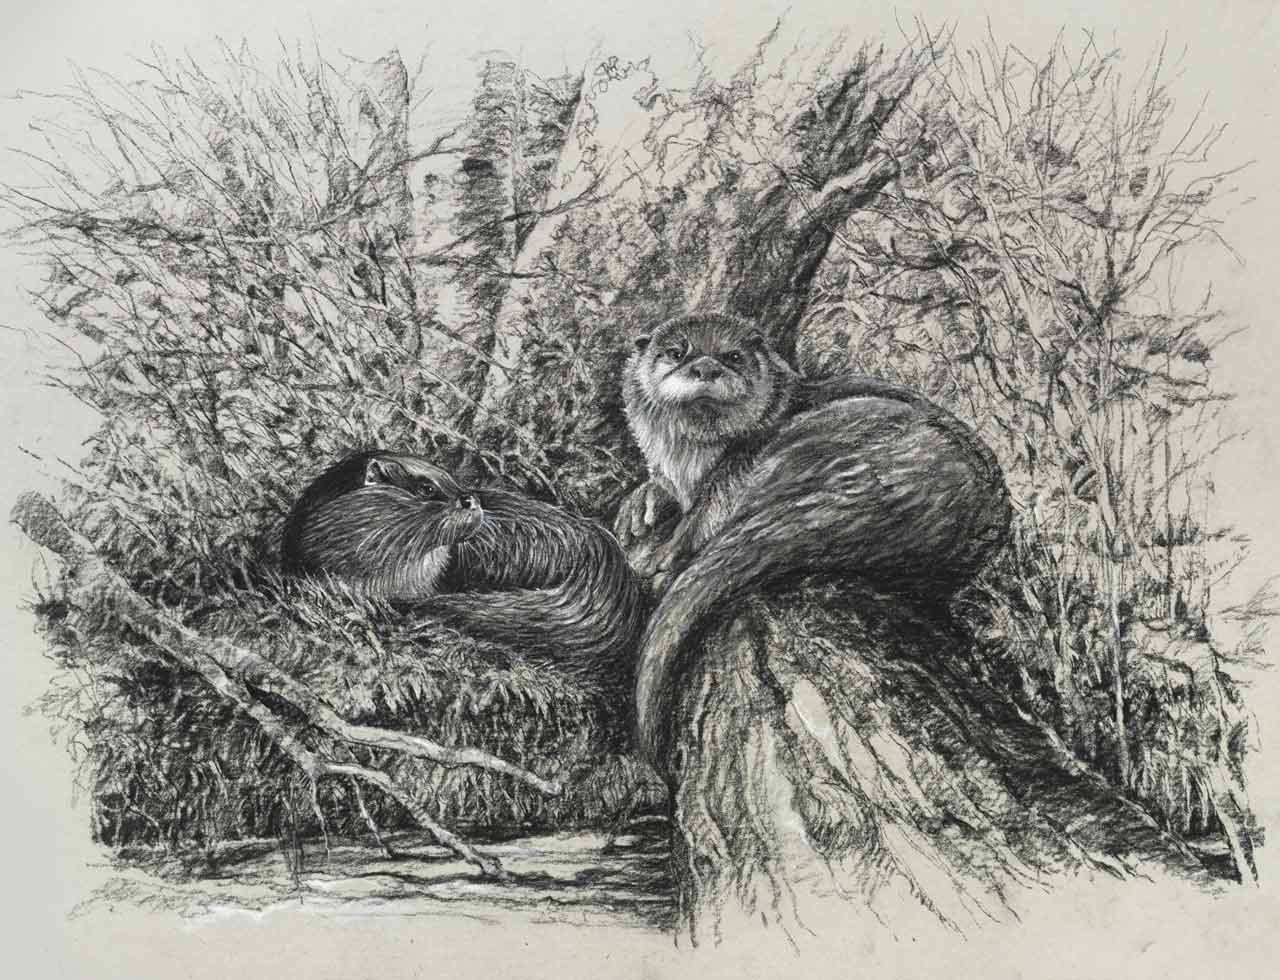 drawing of River Aln otters